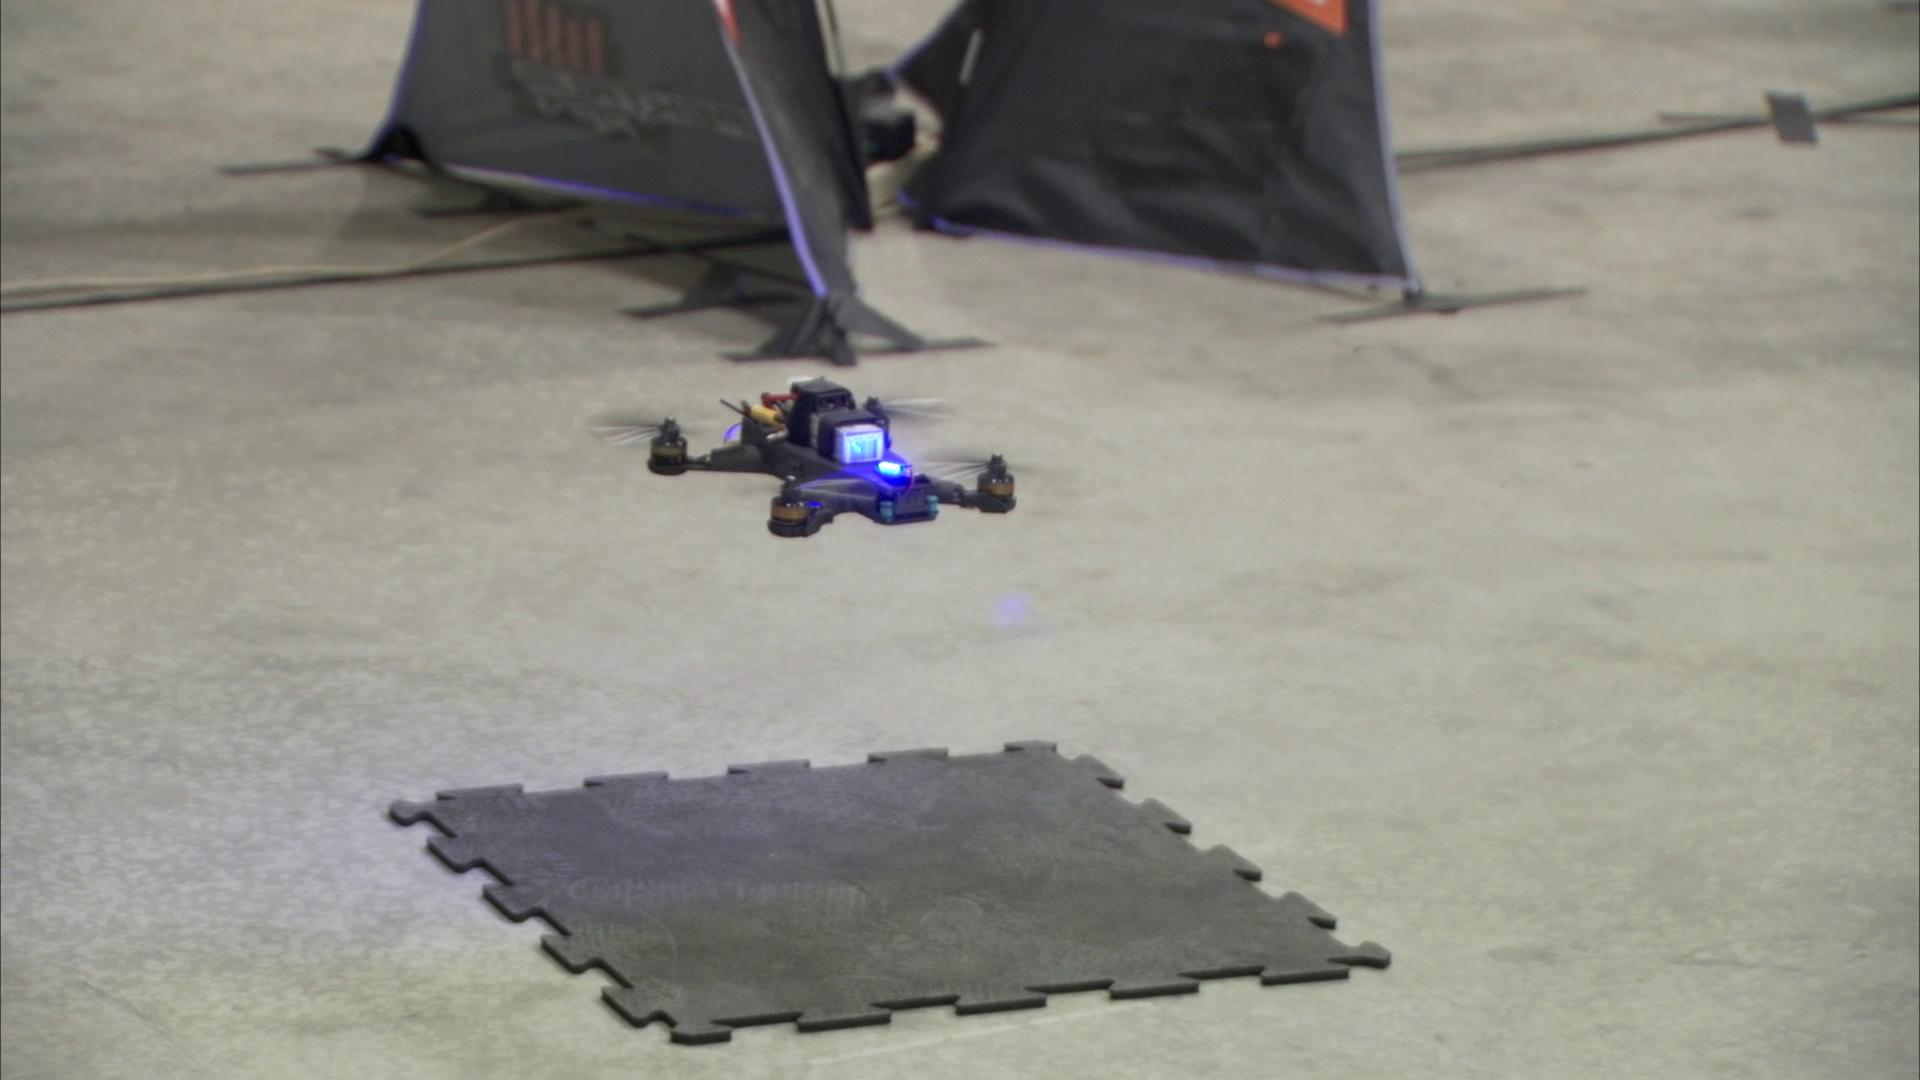 What's faster: a Google-funded drone or a human pilot? NASA put it to the test.